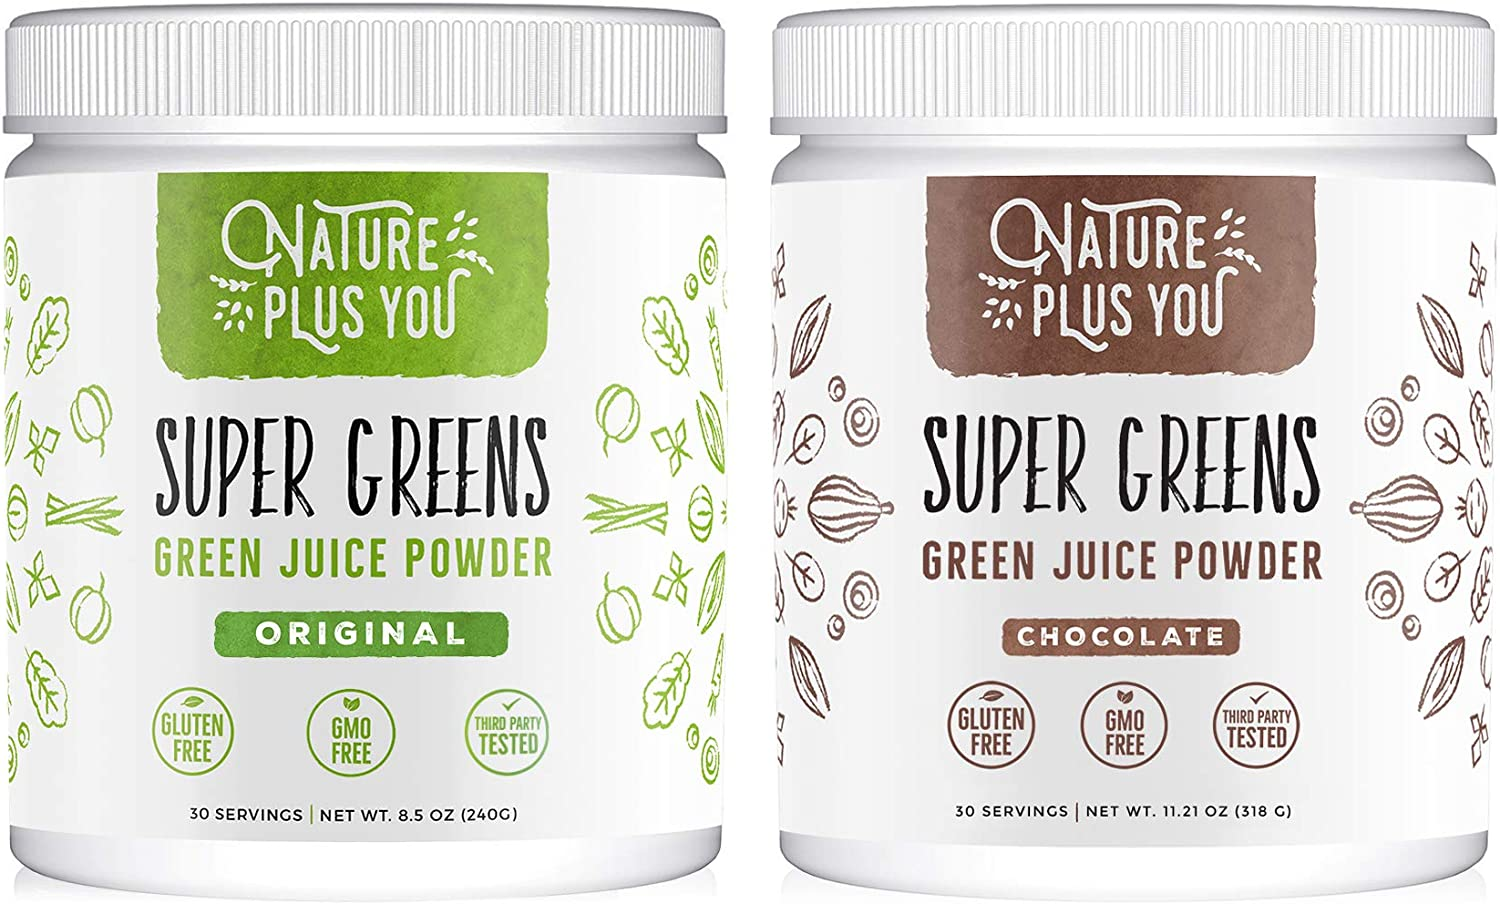 Super Greens Powder and Chocolate Greens Includes Spirulina, Alfalfa, Spinach, Acai, Probiotics and Digestive Enzymes, No Artificial Sweeteners,